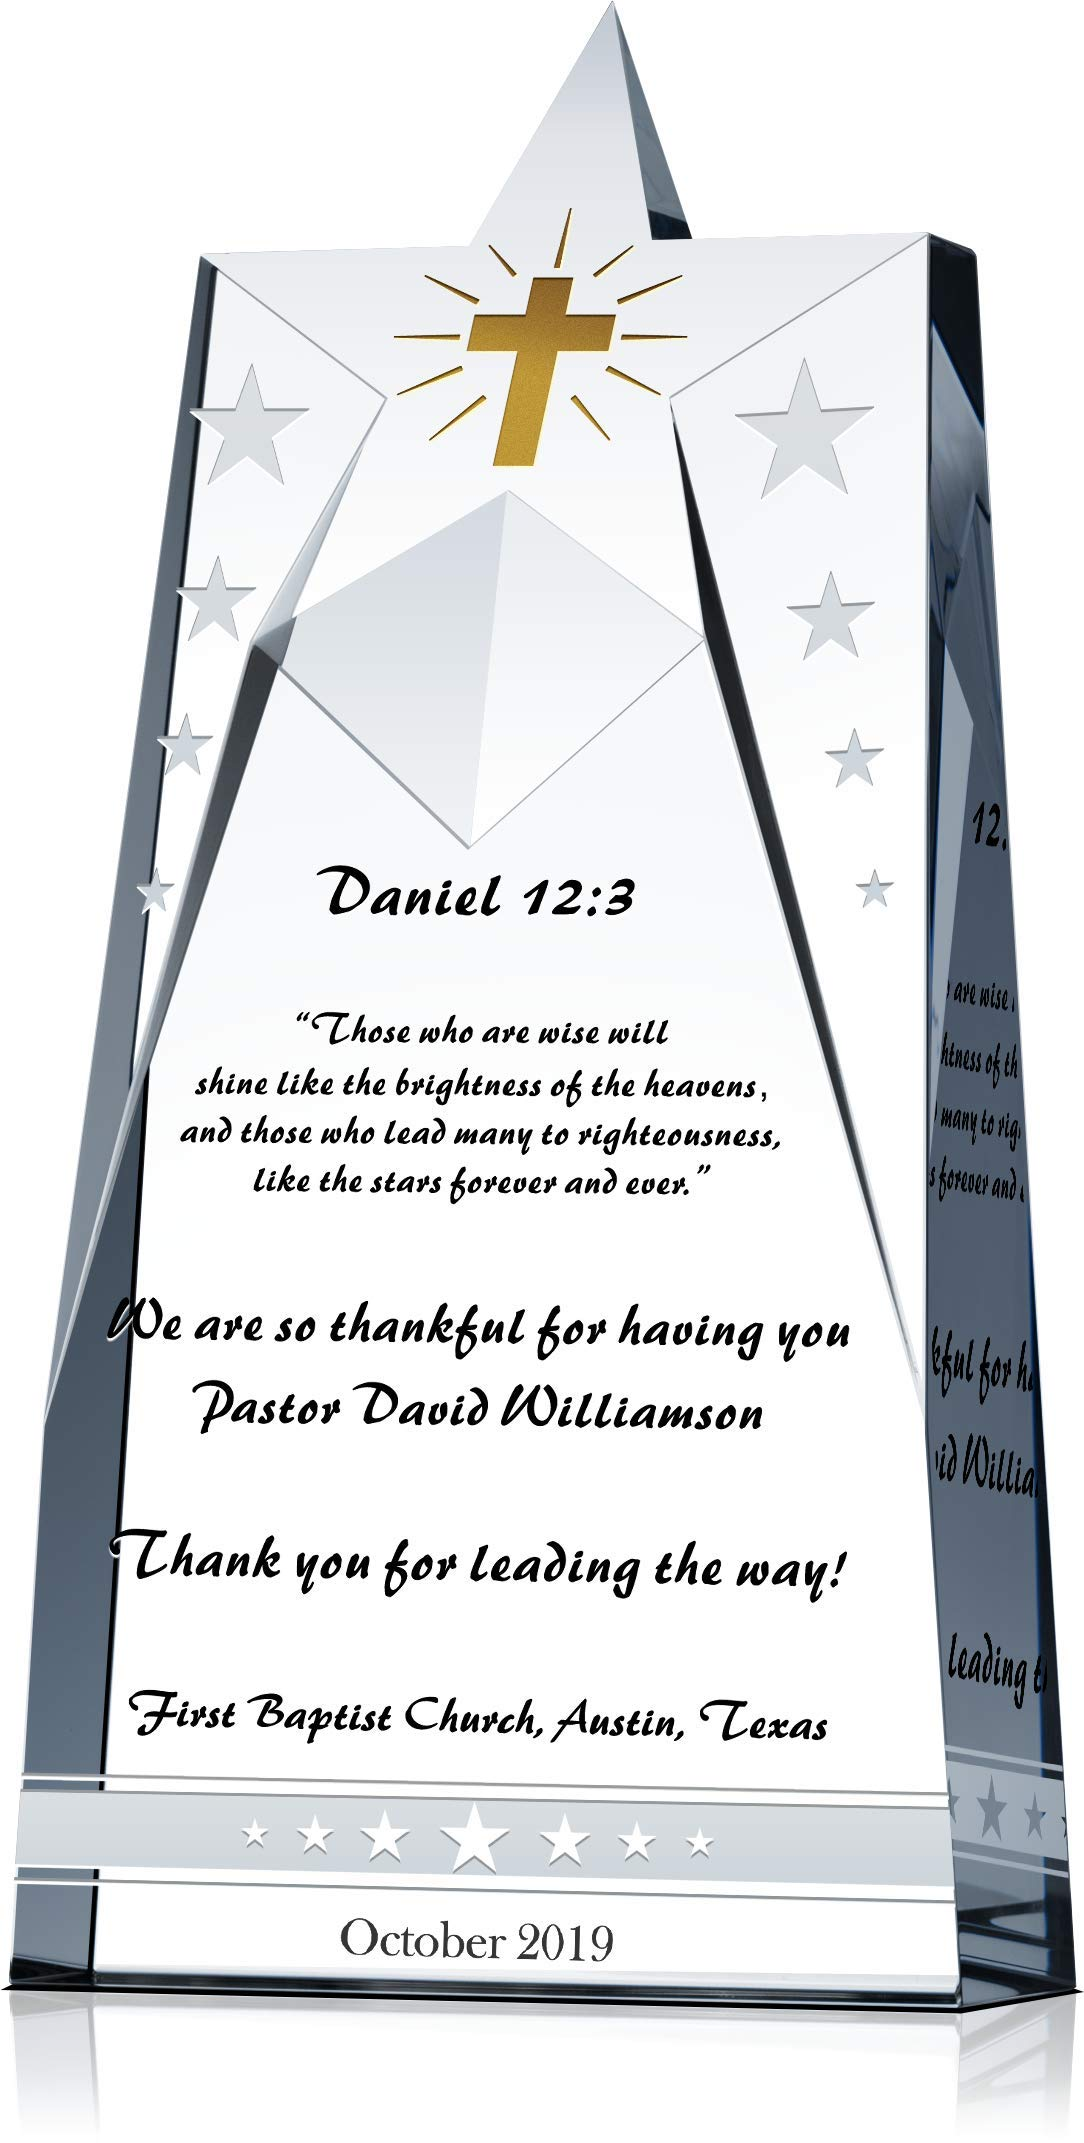 Personalized Crystal Shinning Star Pastor Appreciation Gift Plaque, Customized with Pastor & Church Name, Unique Gift for Pastor/Clergy Appreciation Month or Pastor Appreciation Day (L - 10'') by Crystal Central